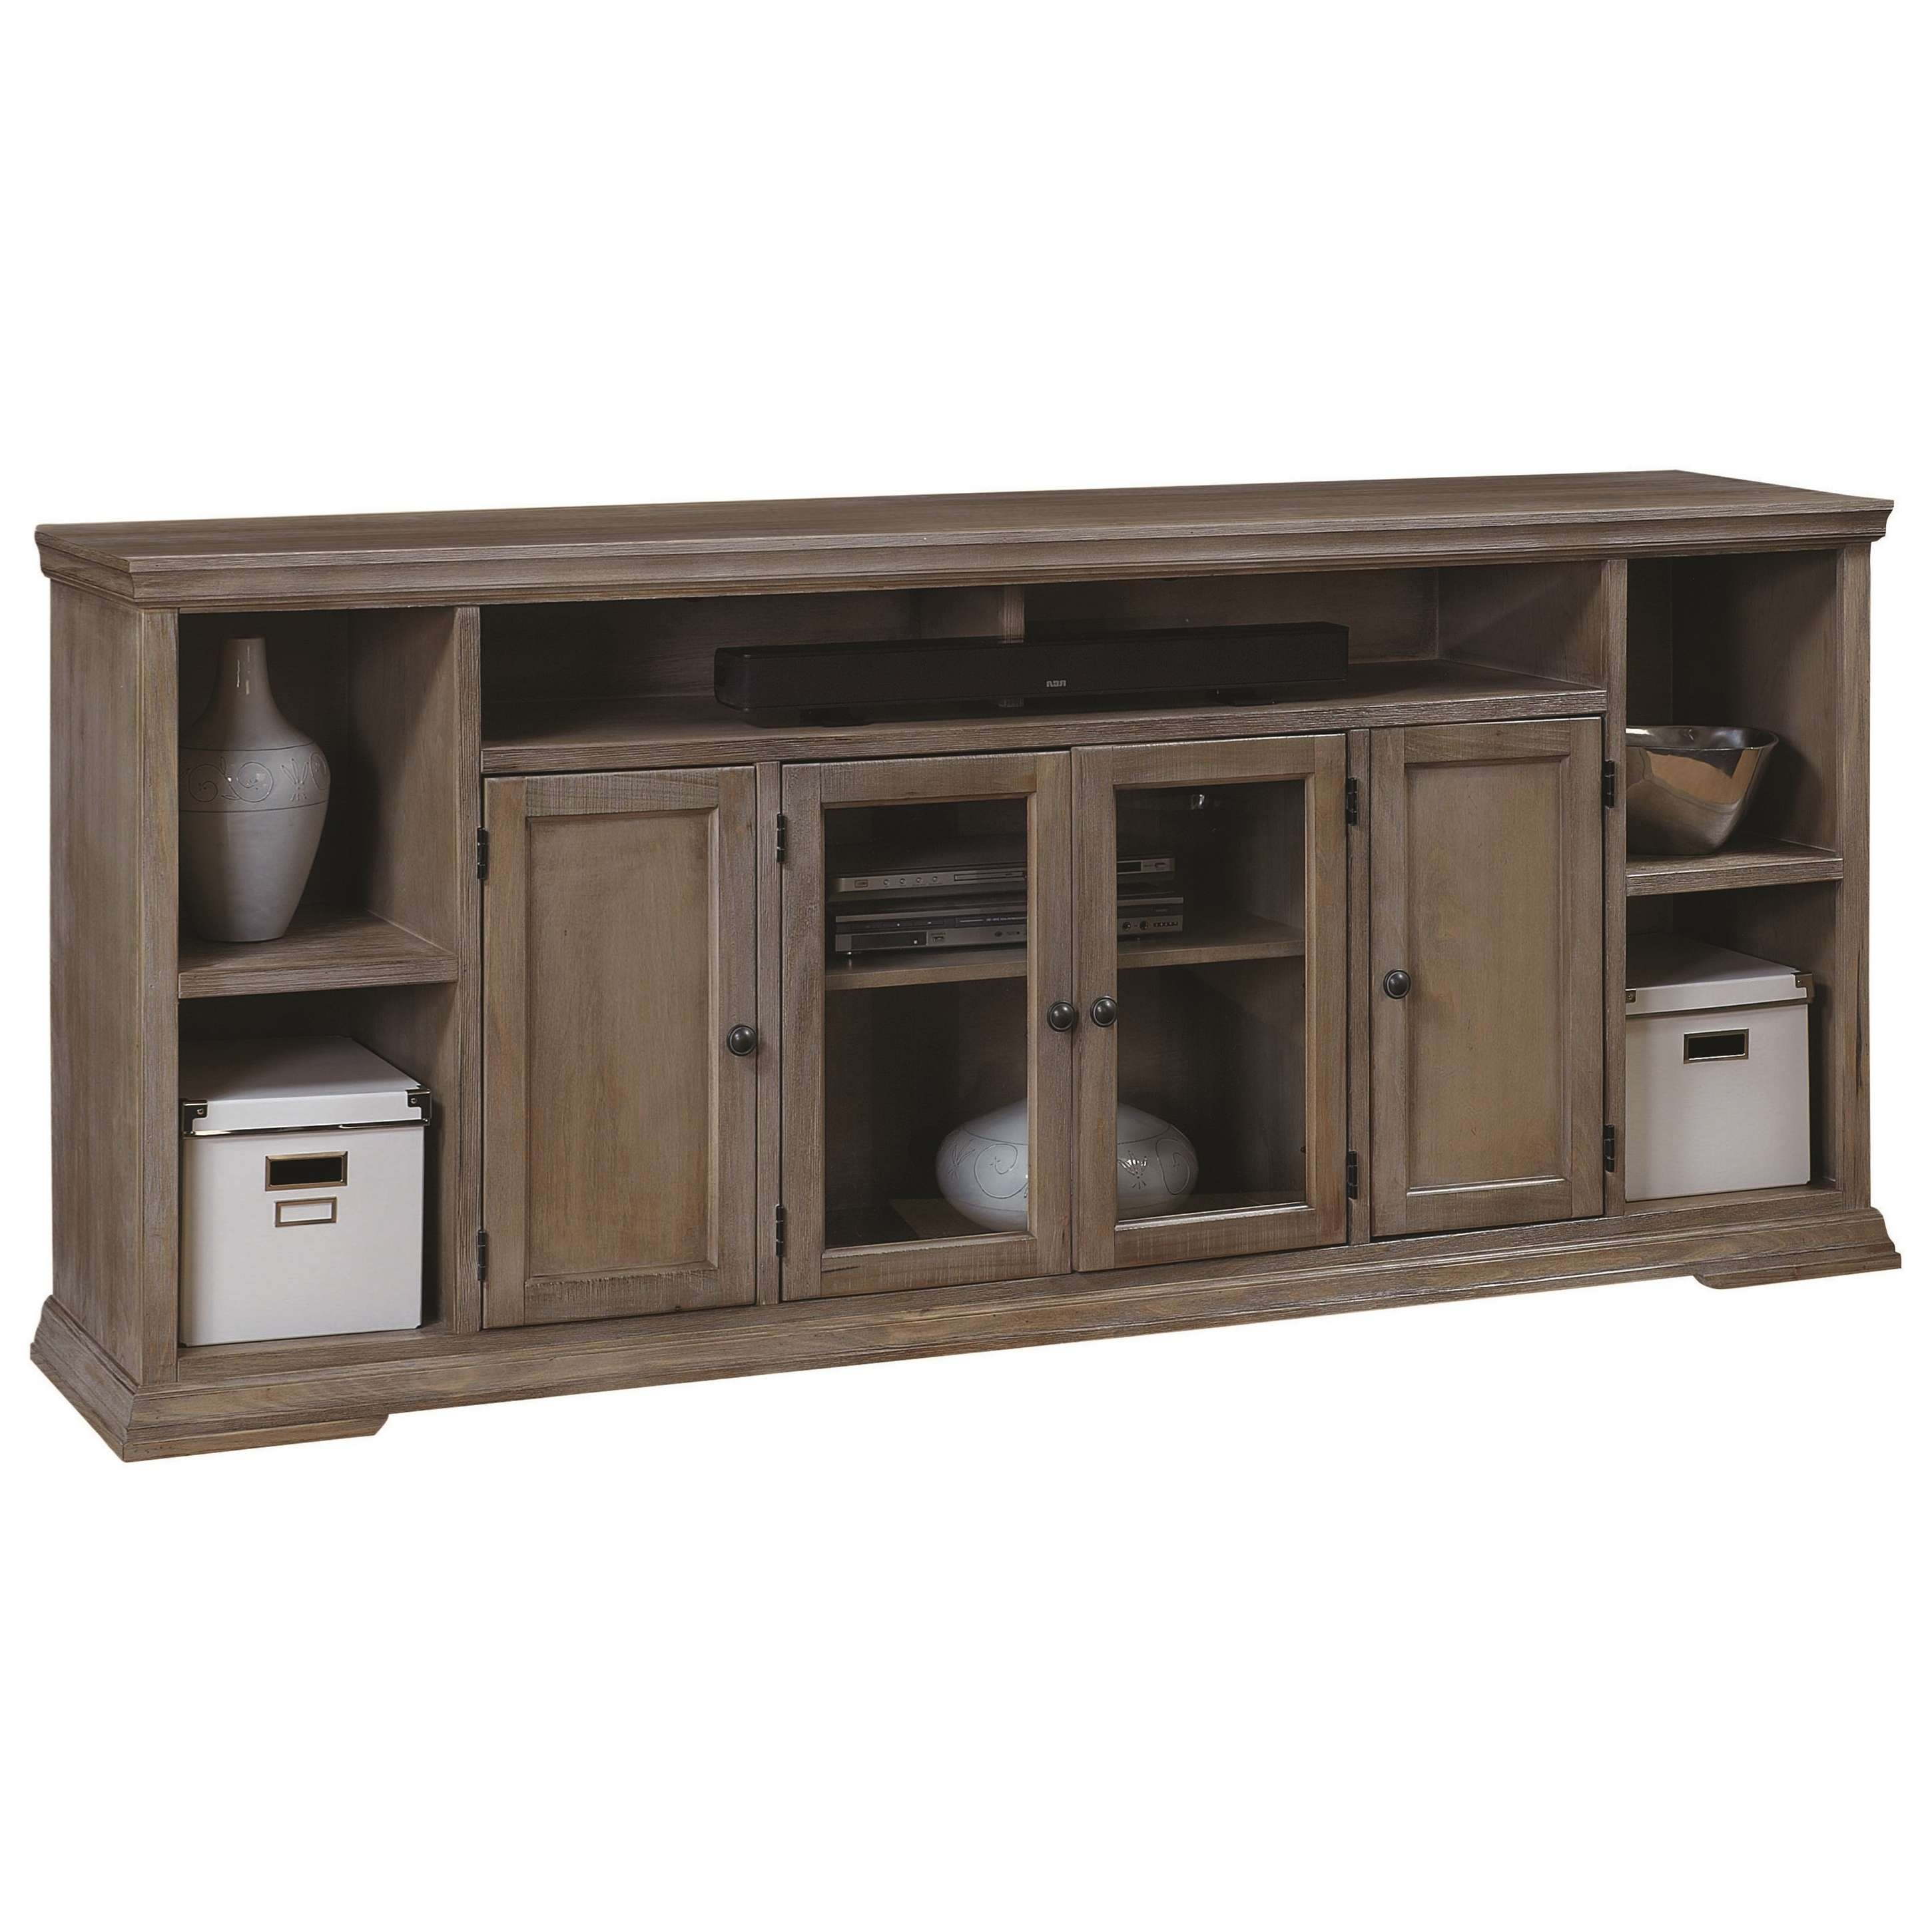 Perfect 84 Inch Tv Stand 74 With Additional Modern Home Decor Within 84 Inch Tv Stands (View 8 of 15)